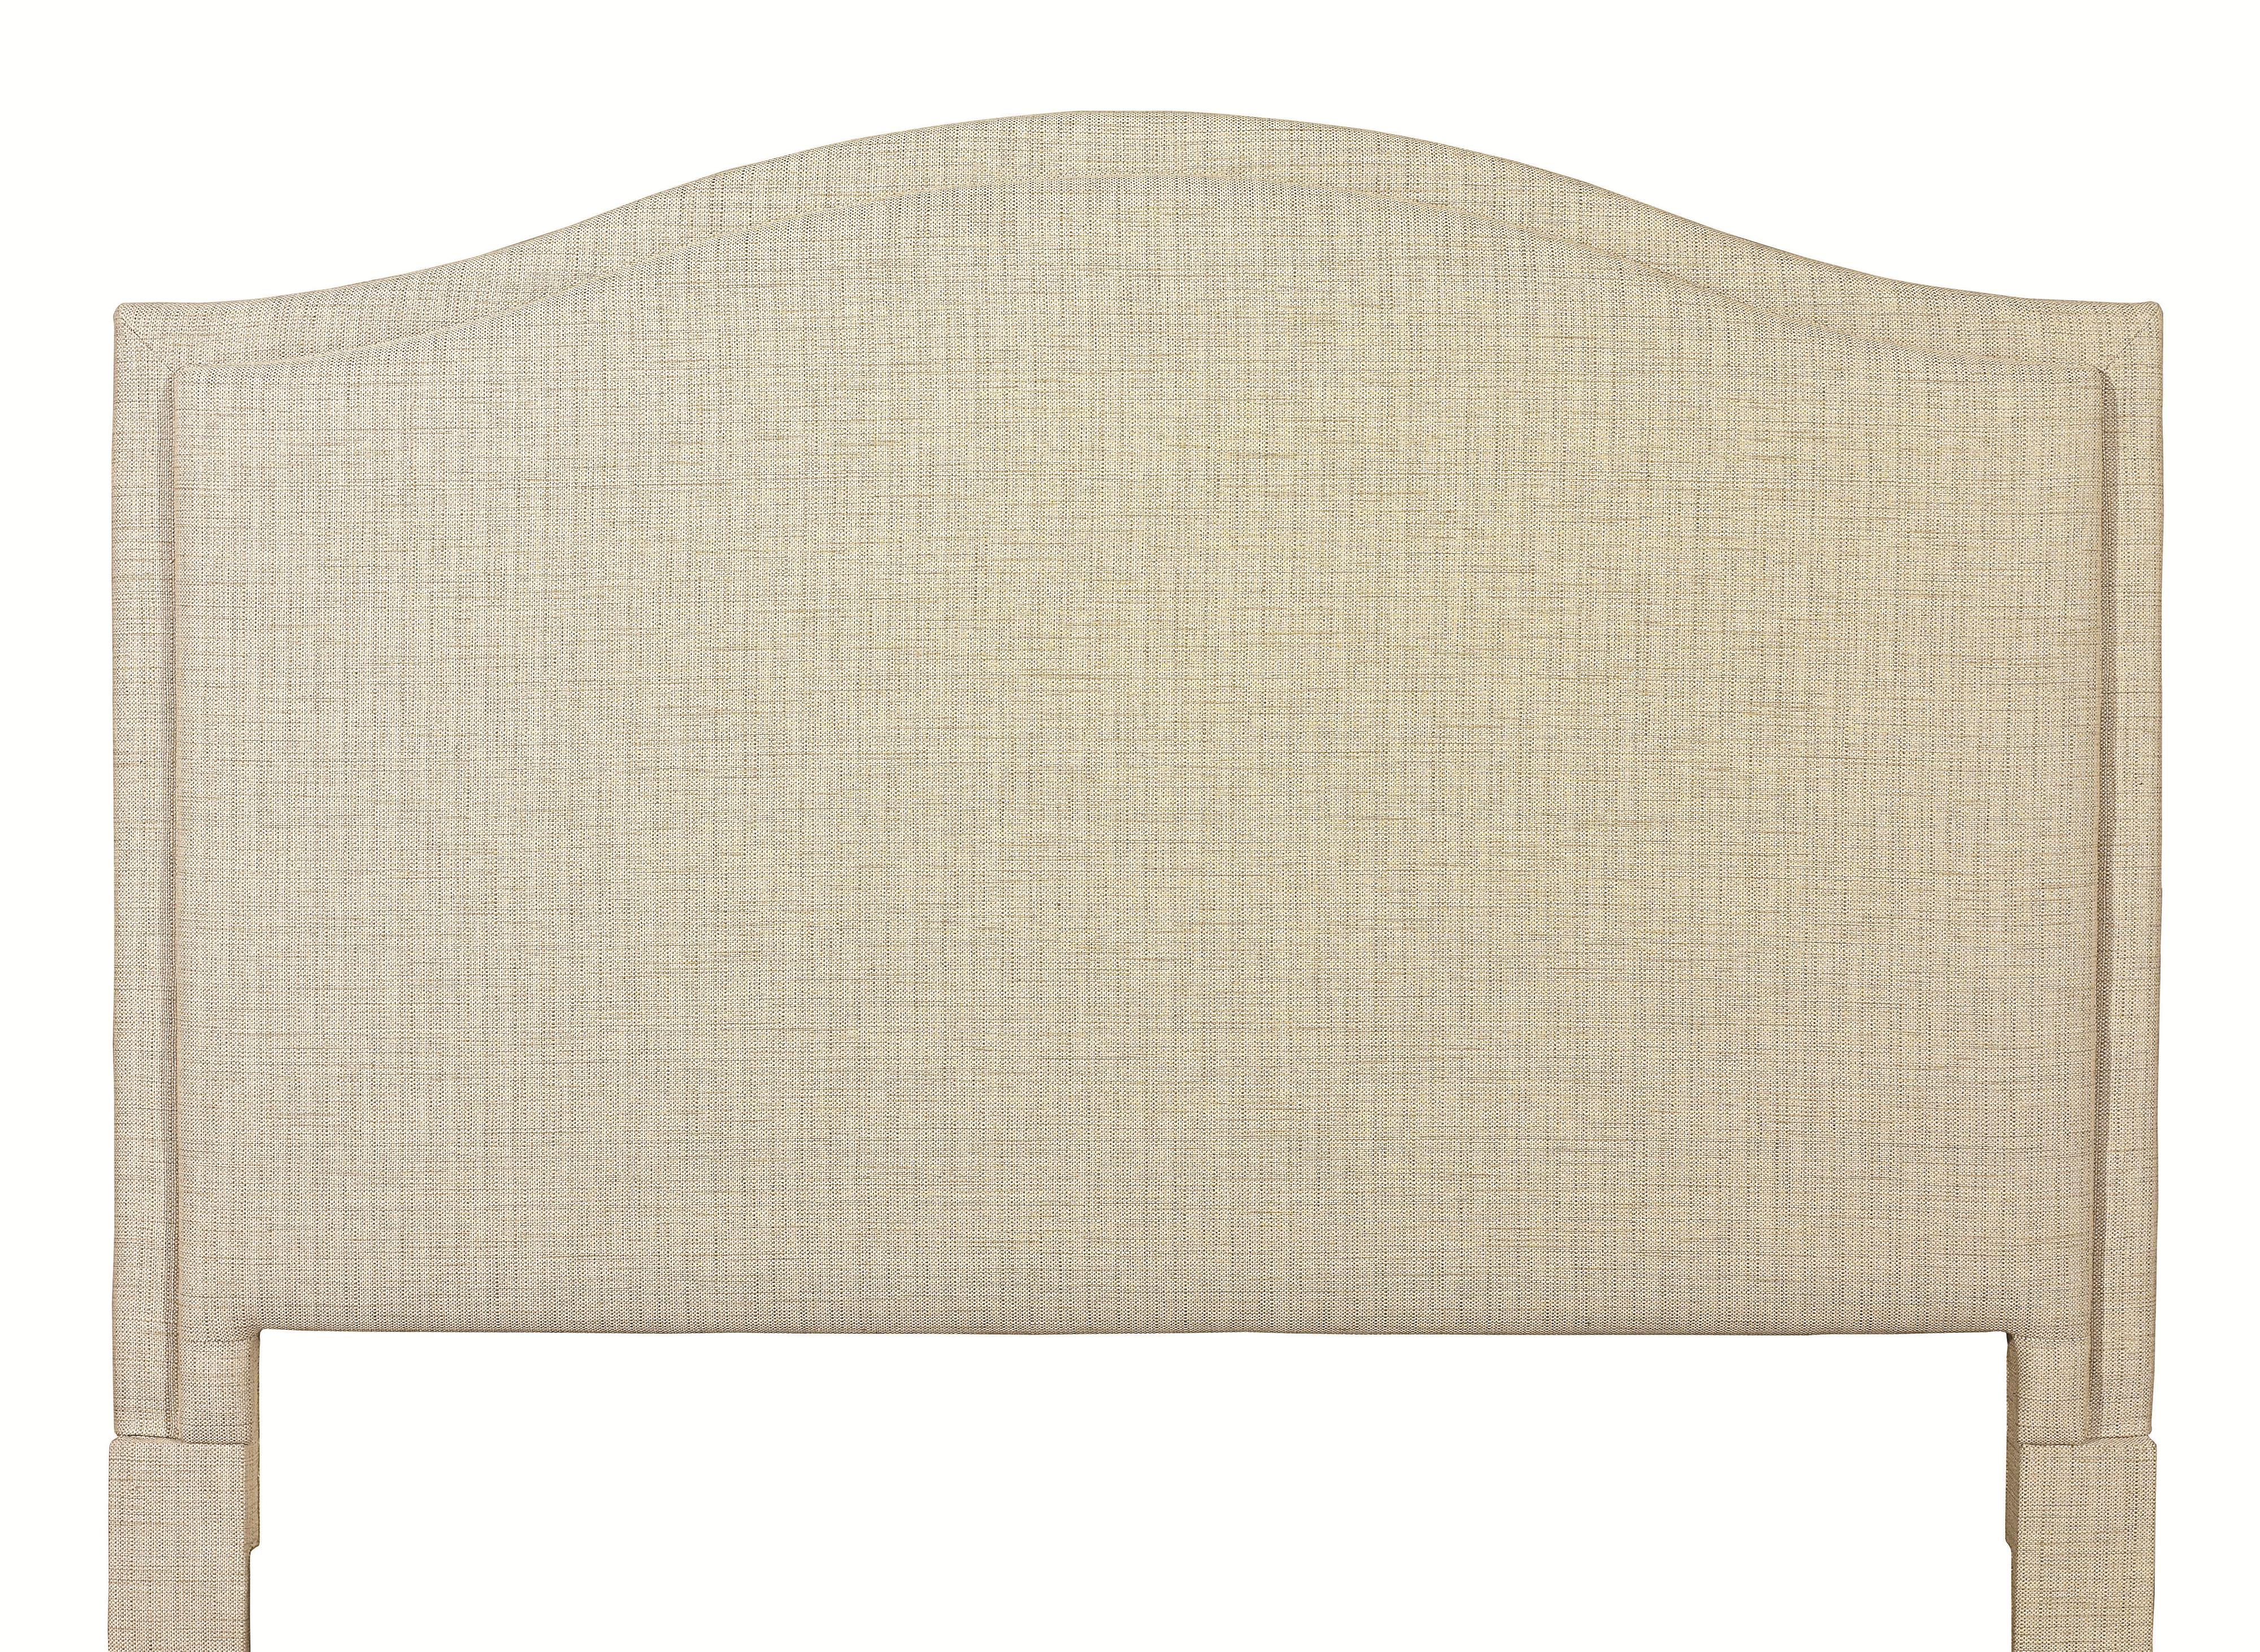 Custom Upholstered Beds California King Vienna Upholstered Headboard by Bassett at Bassett of Cool Springs